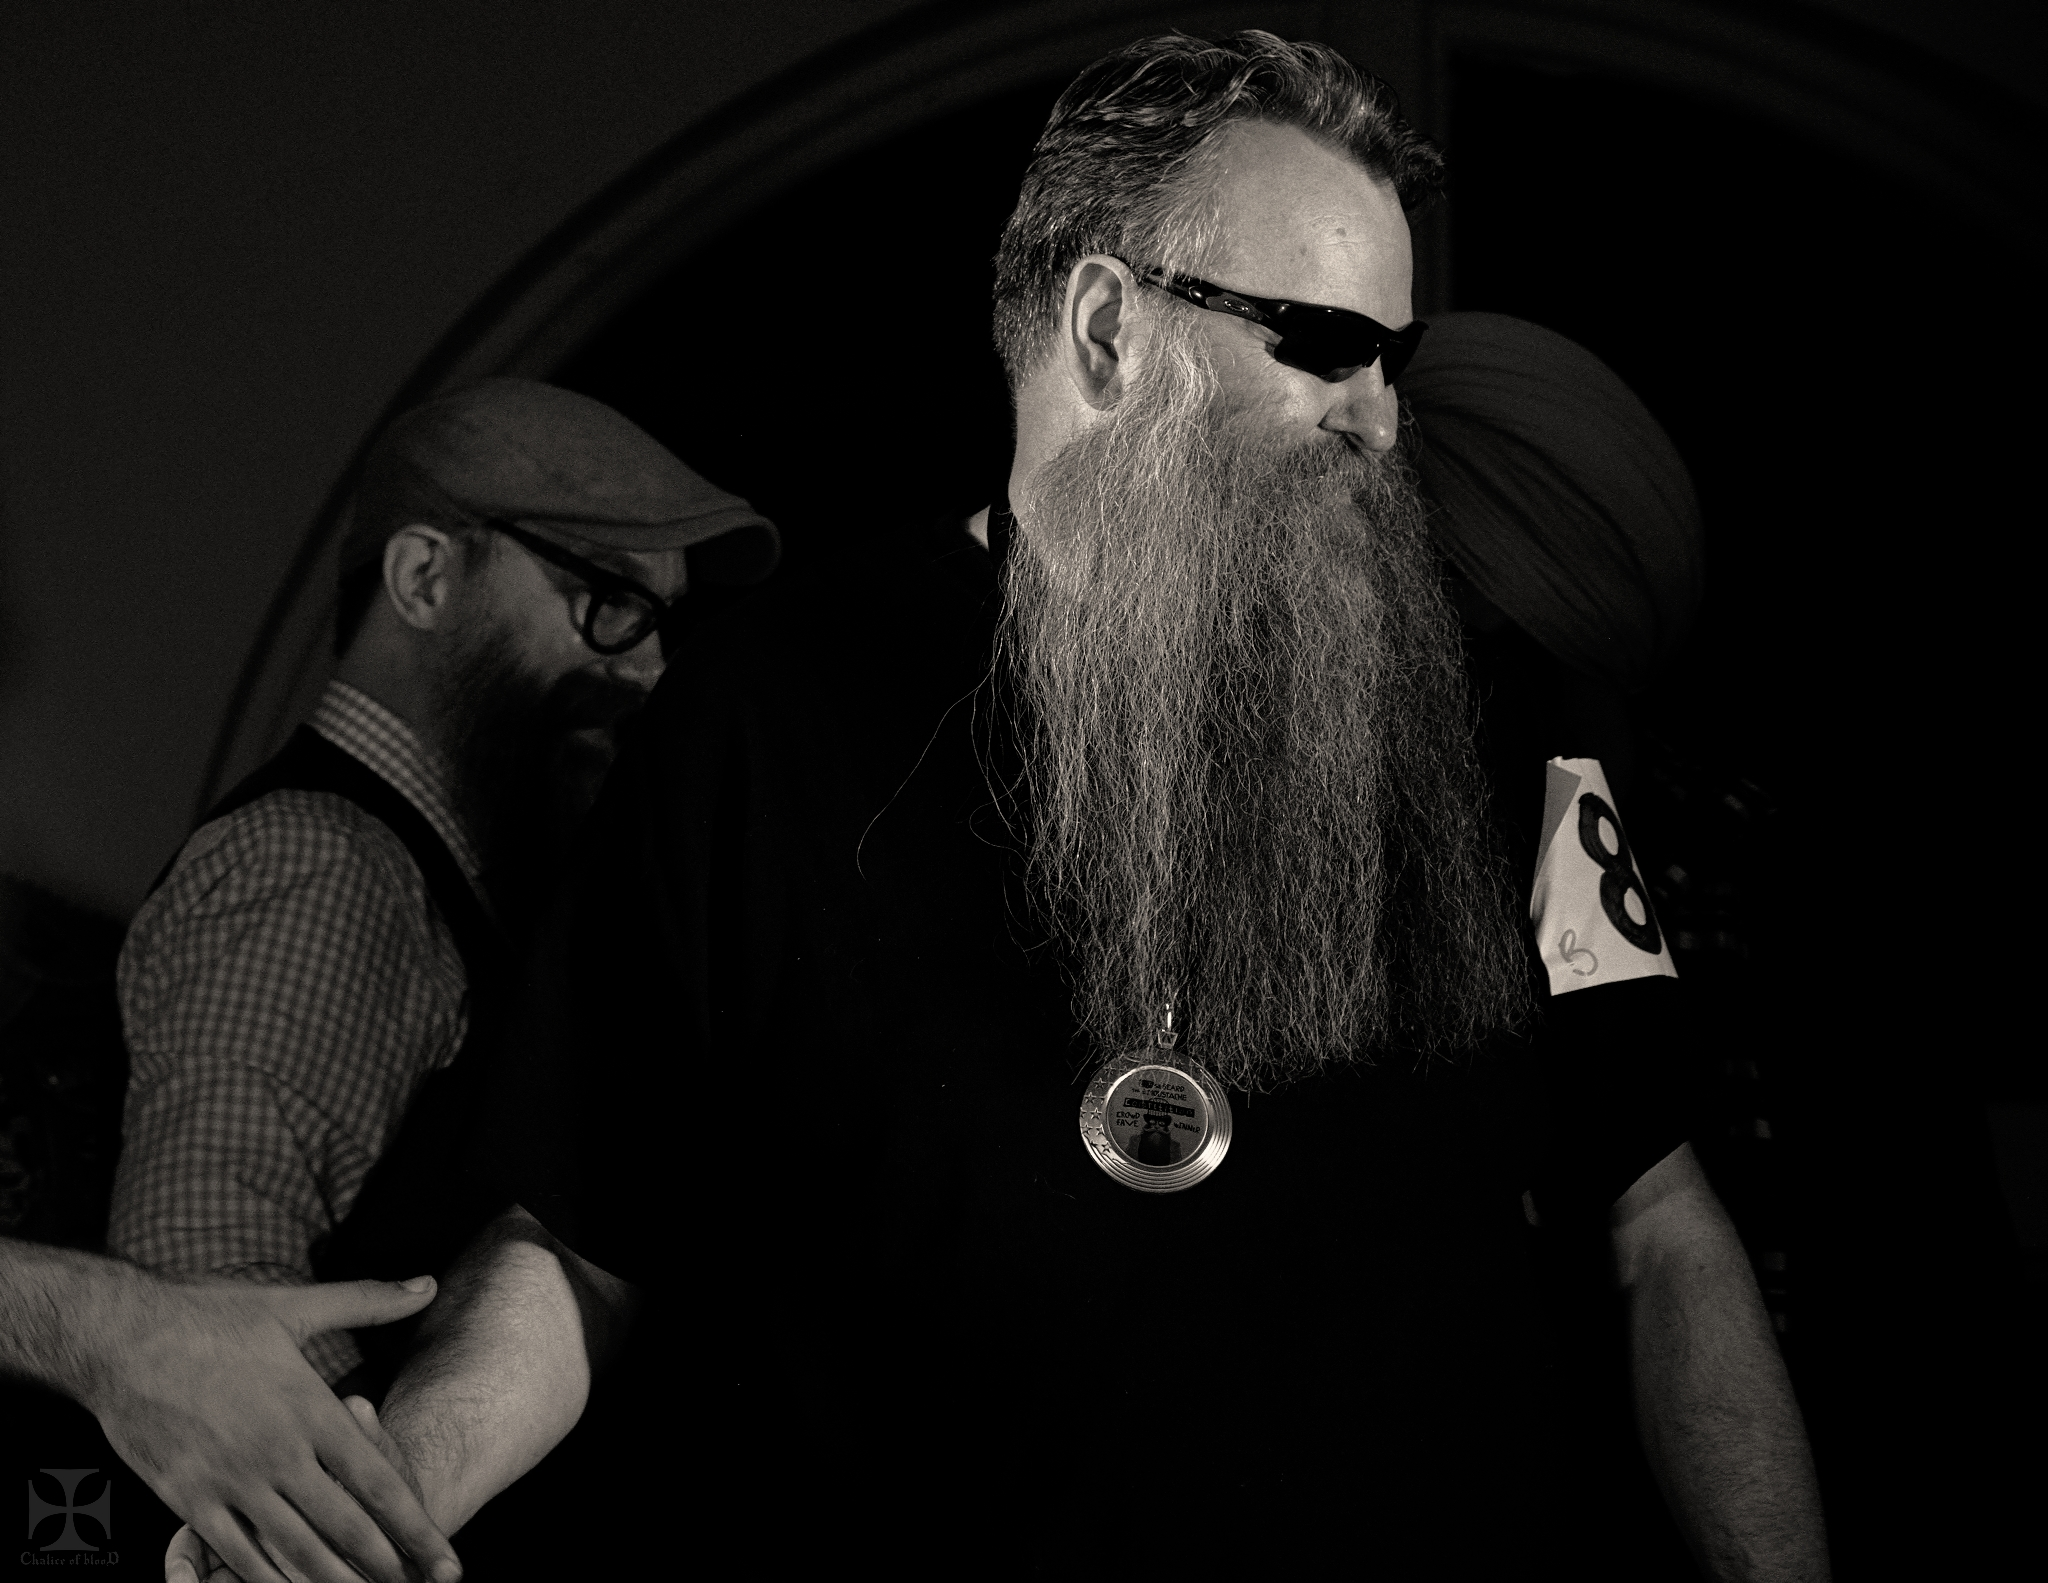 2018.09 5th Beard and Moustache Competition - 0241-Exposure.jpg